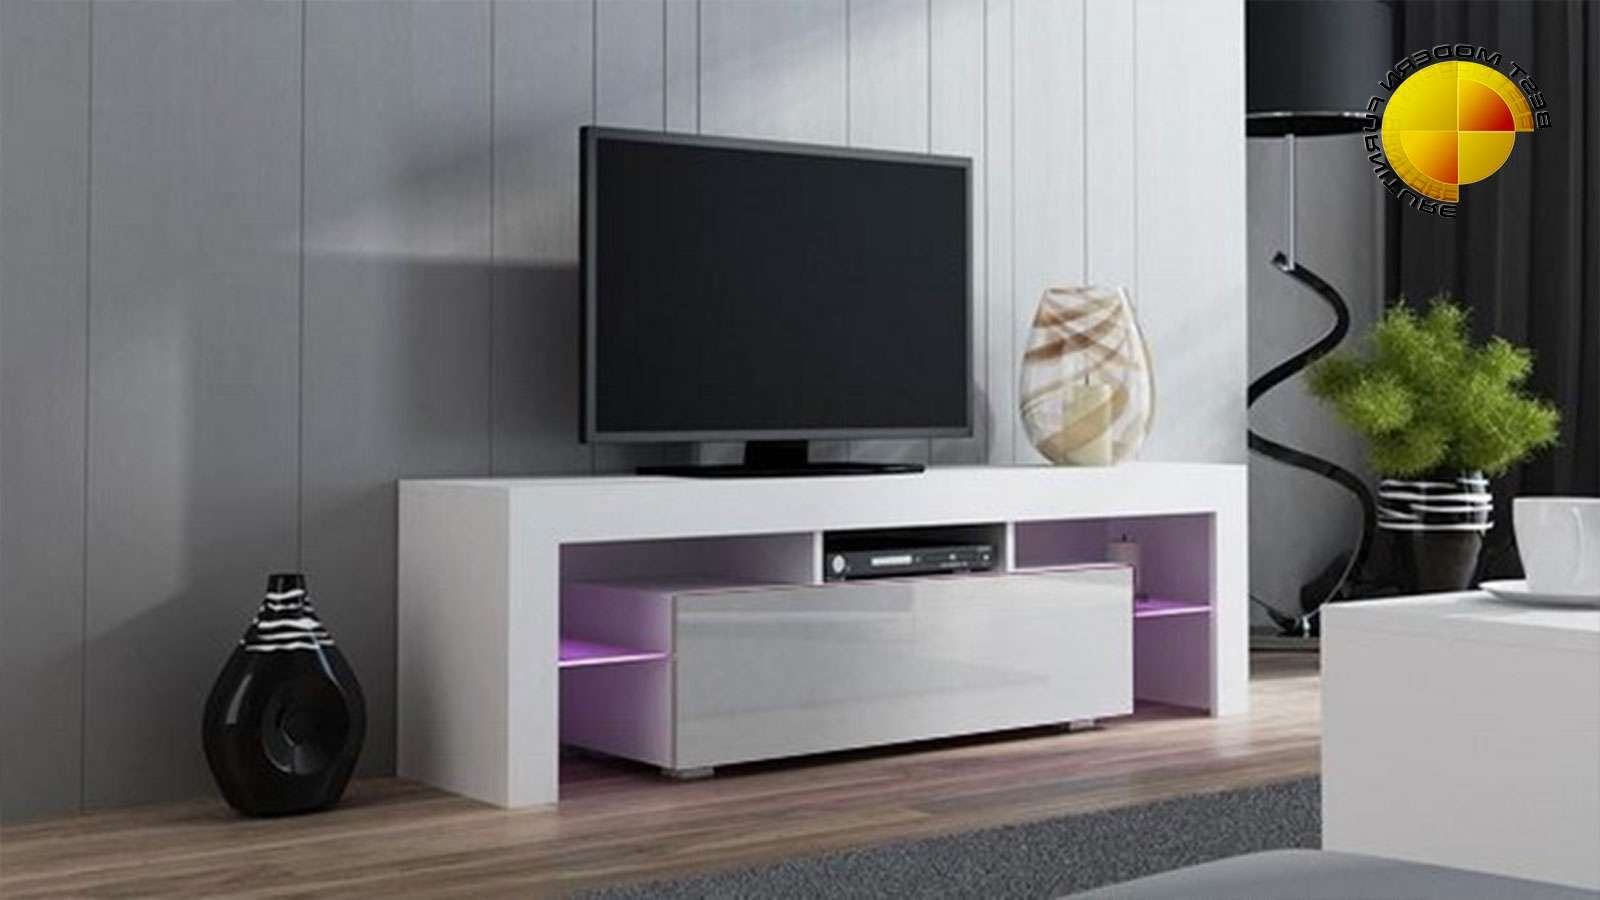 Modern Tv Stand 160Cm High Gloss Cabinet Rgb Led Lights White Unit Intended For Modern White Gloss Tv Stands (View 11 of 15)